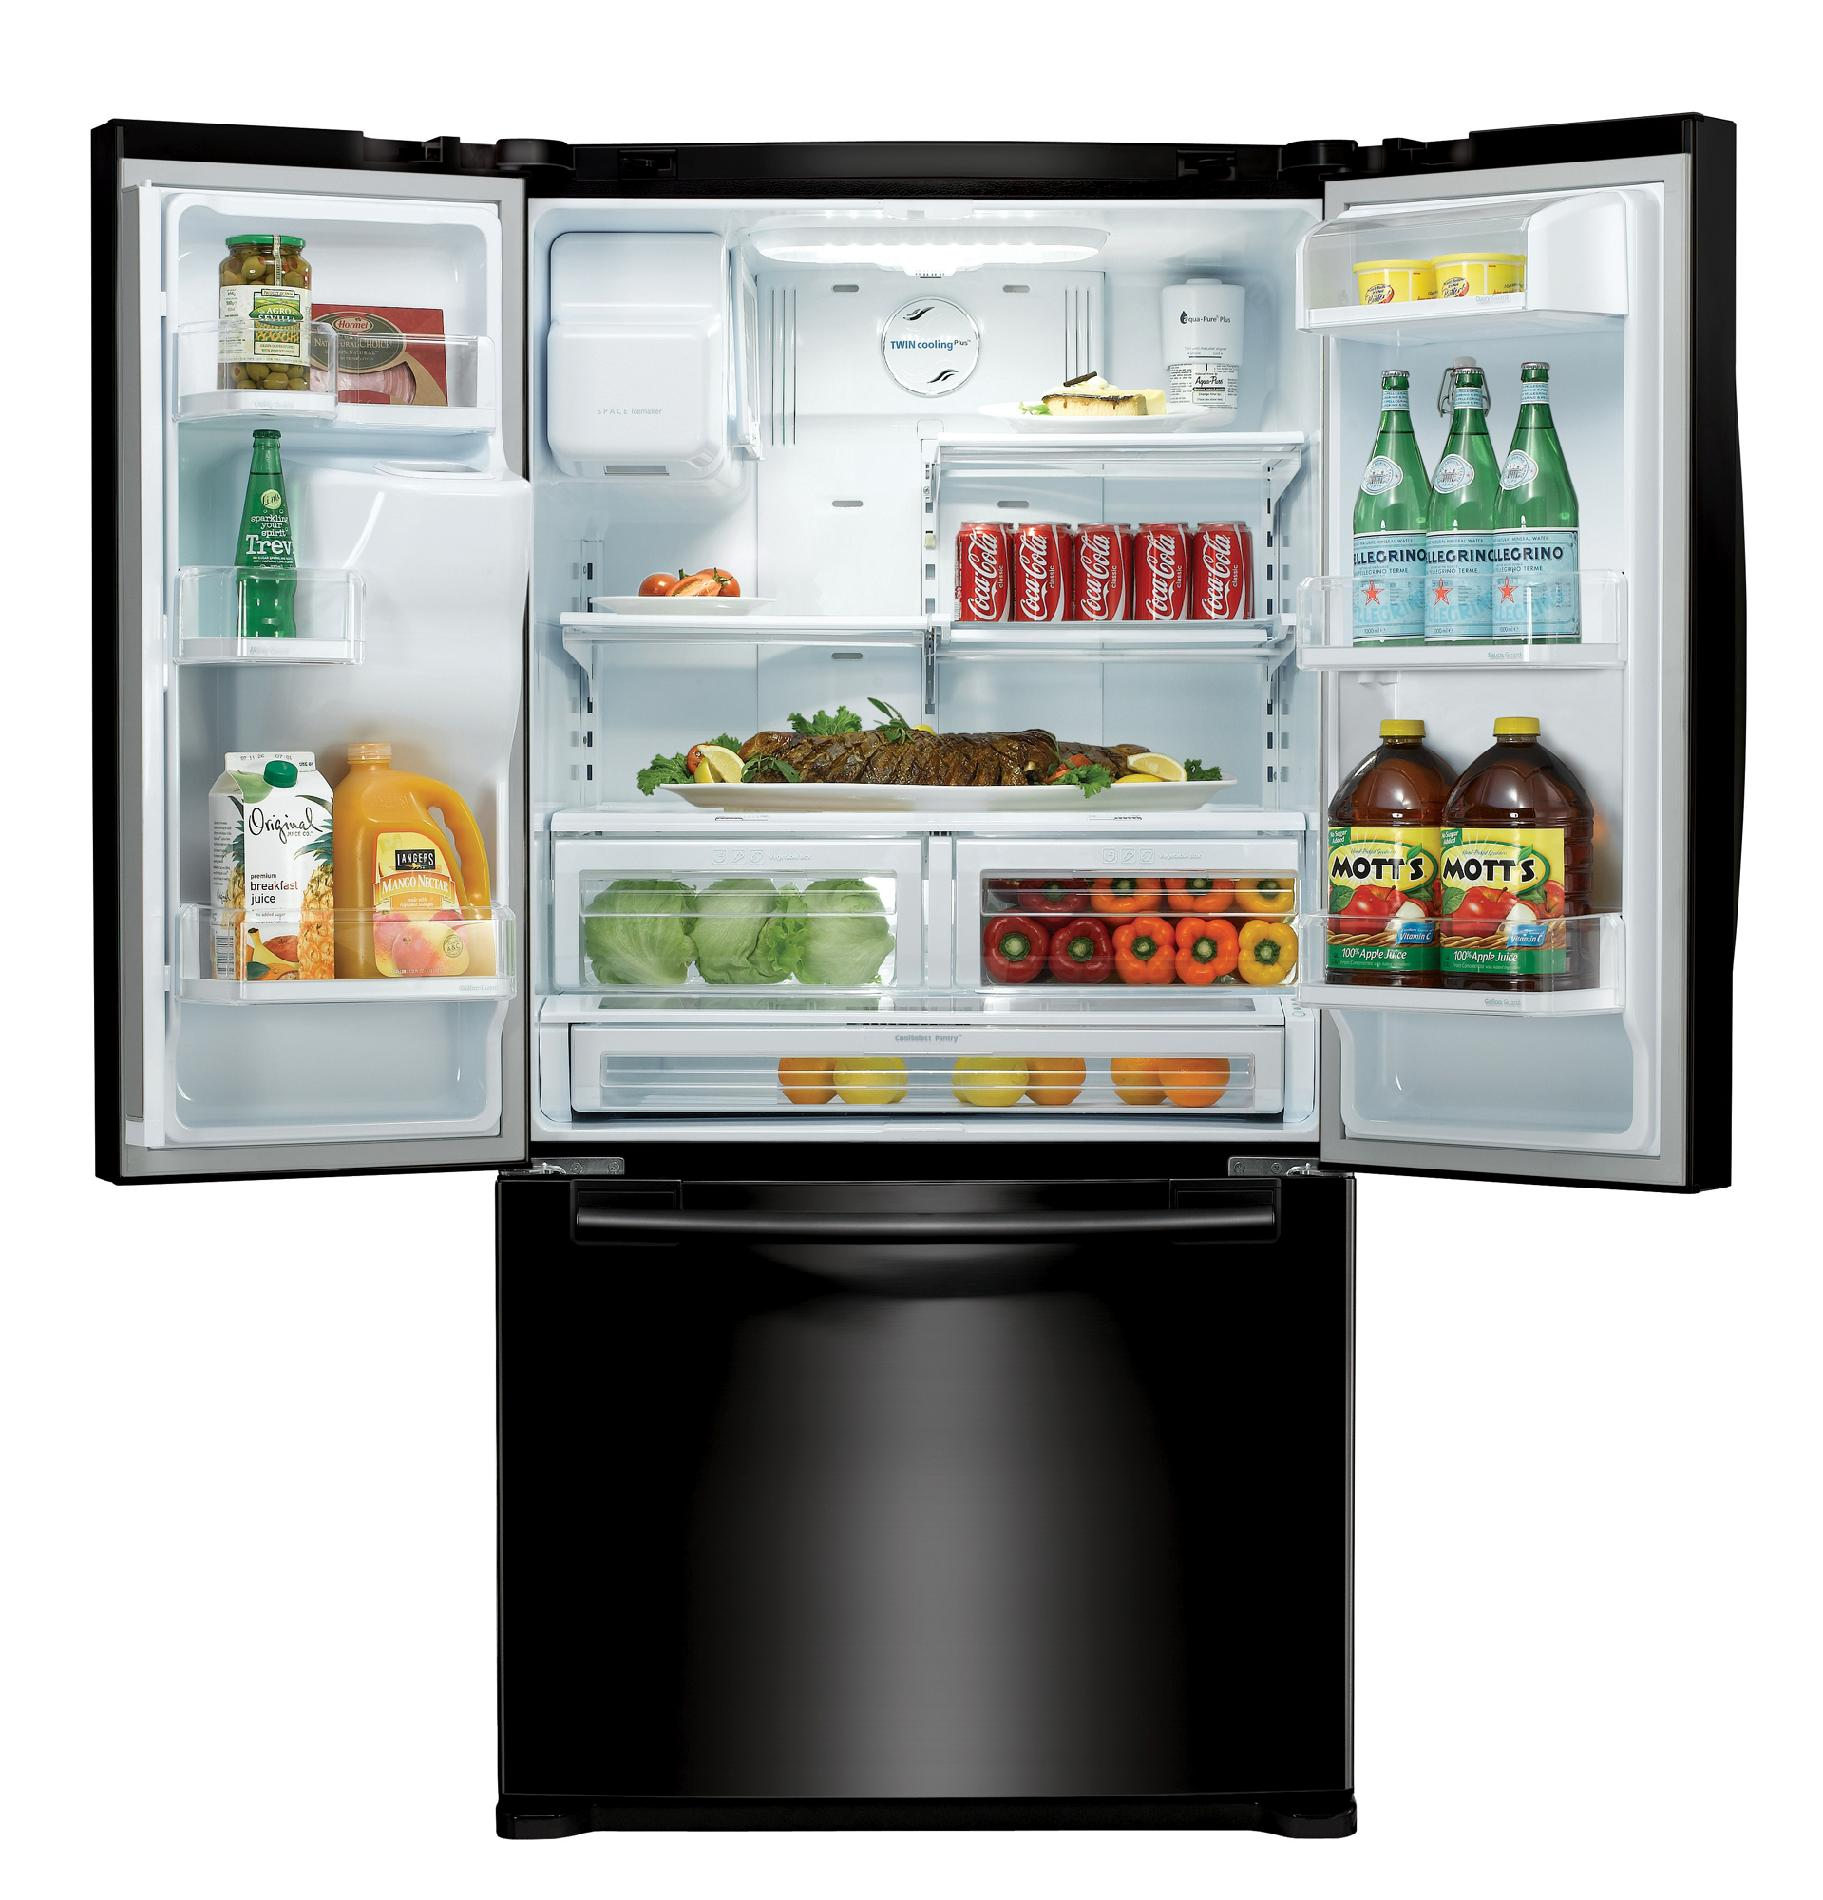 Samsung 29 cu. ft. French Door Refrigerator - Black